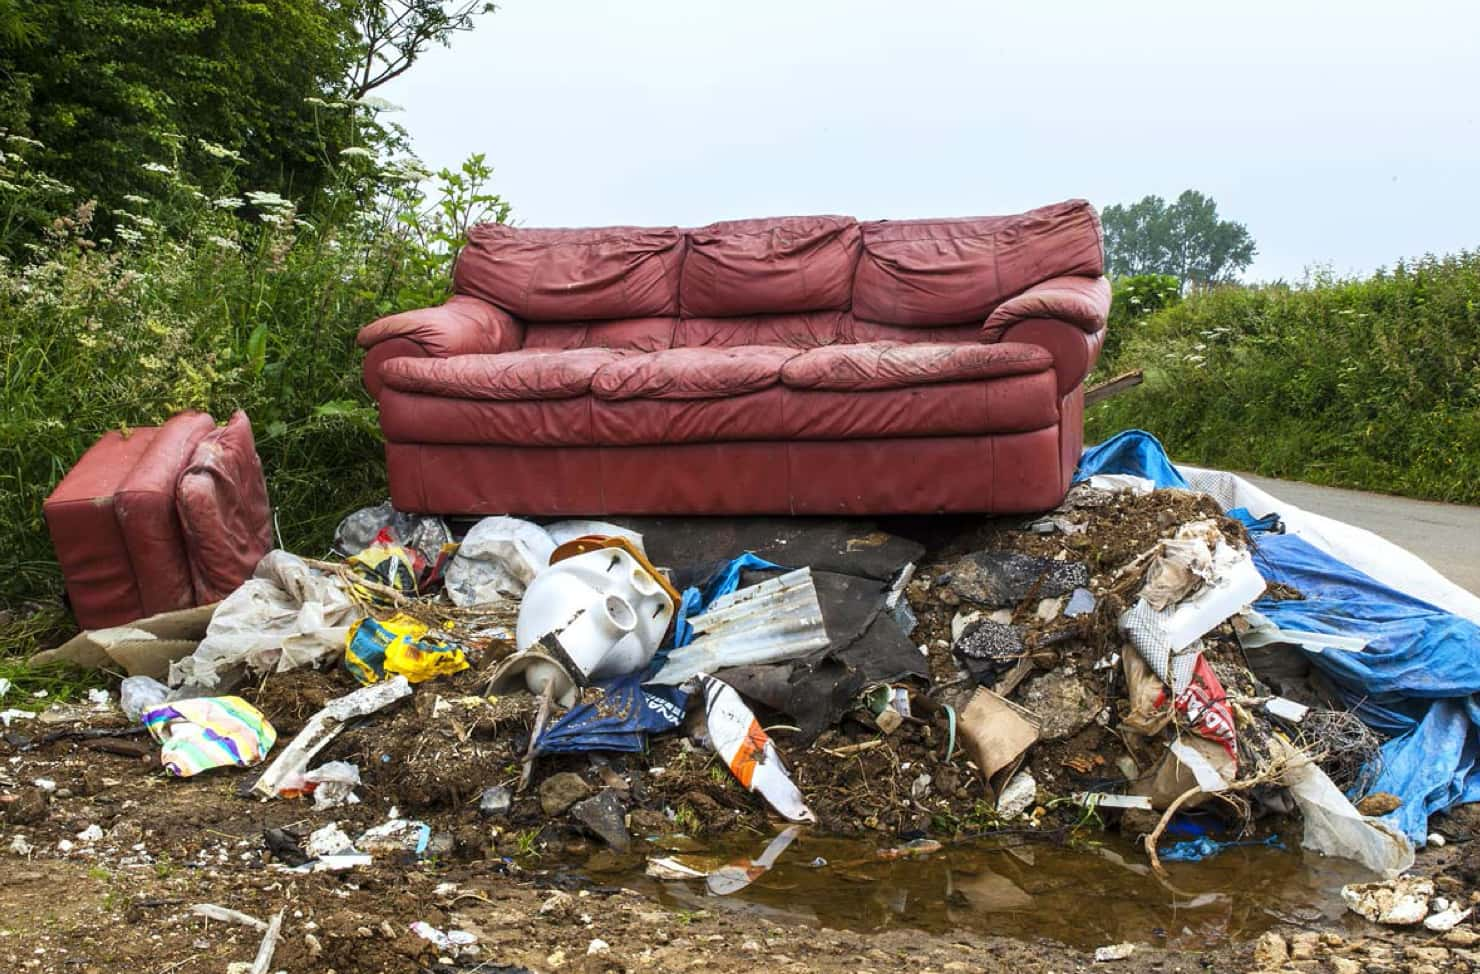 sofa fly-tipped